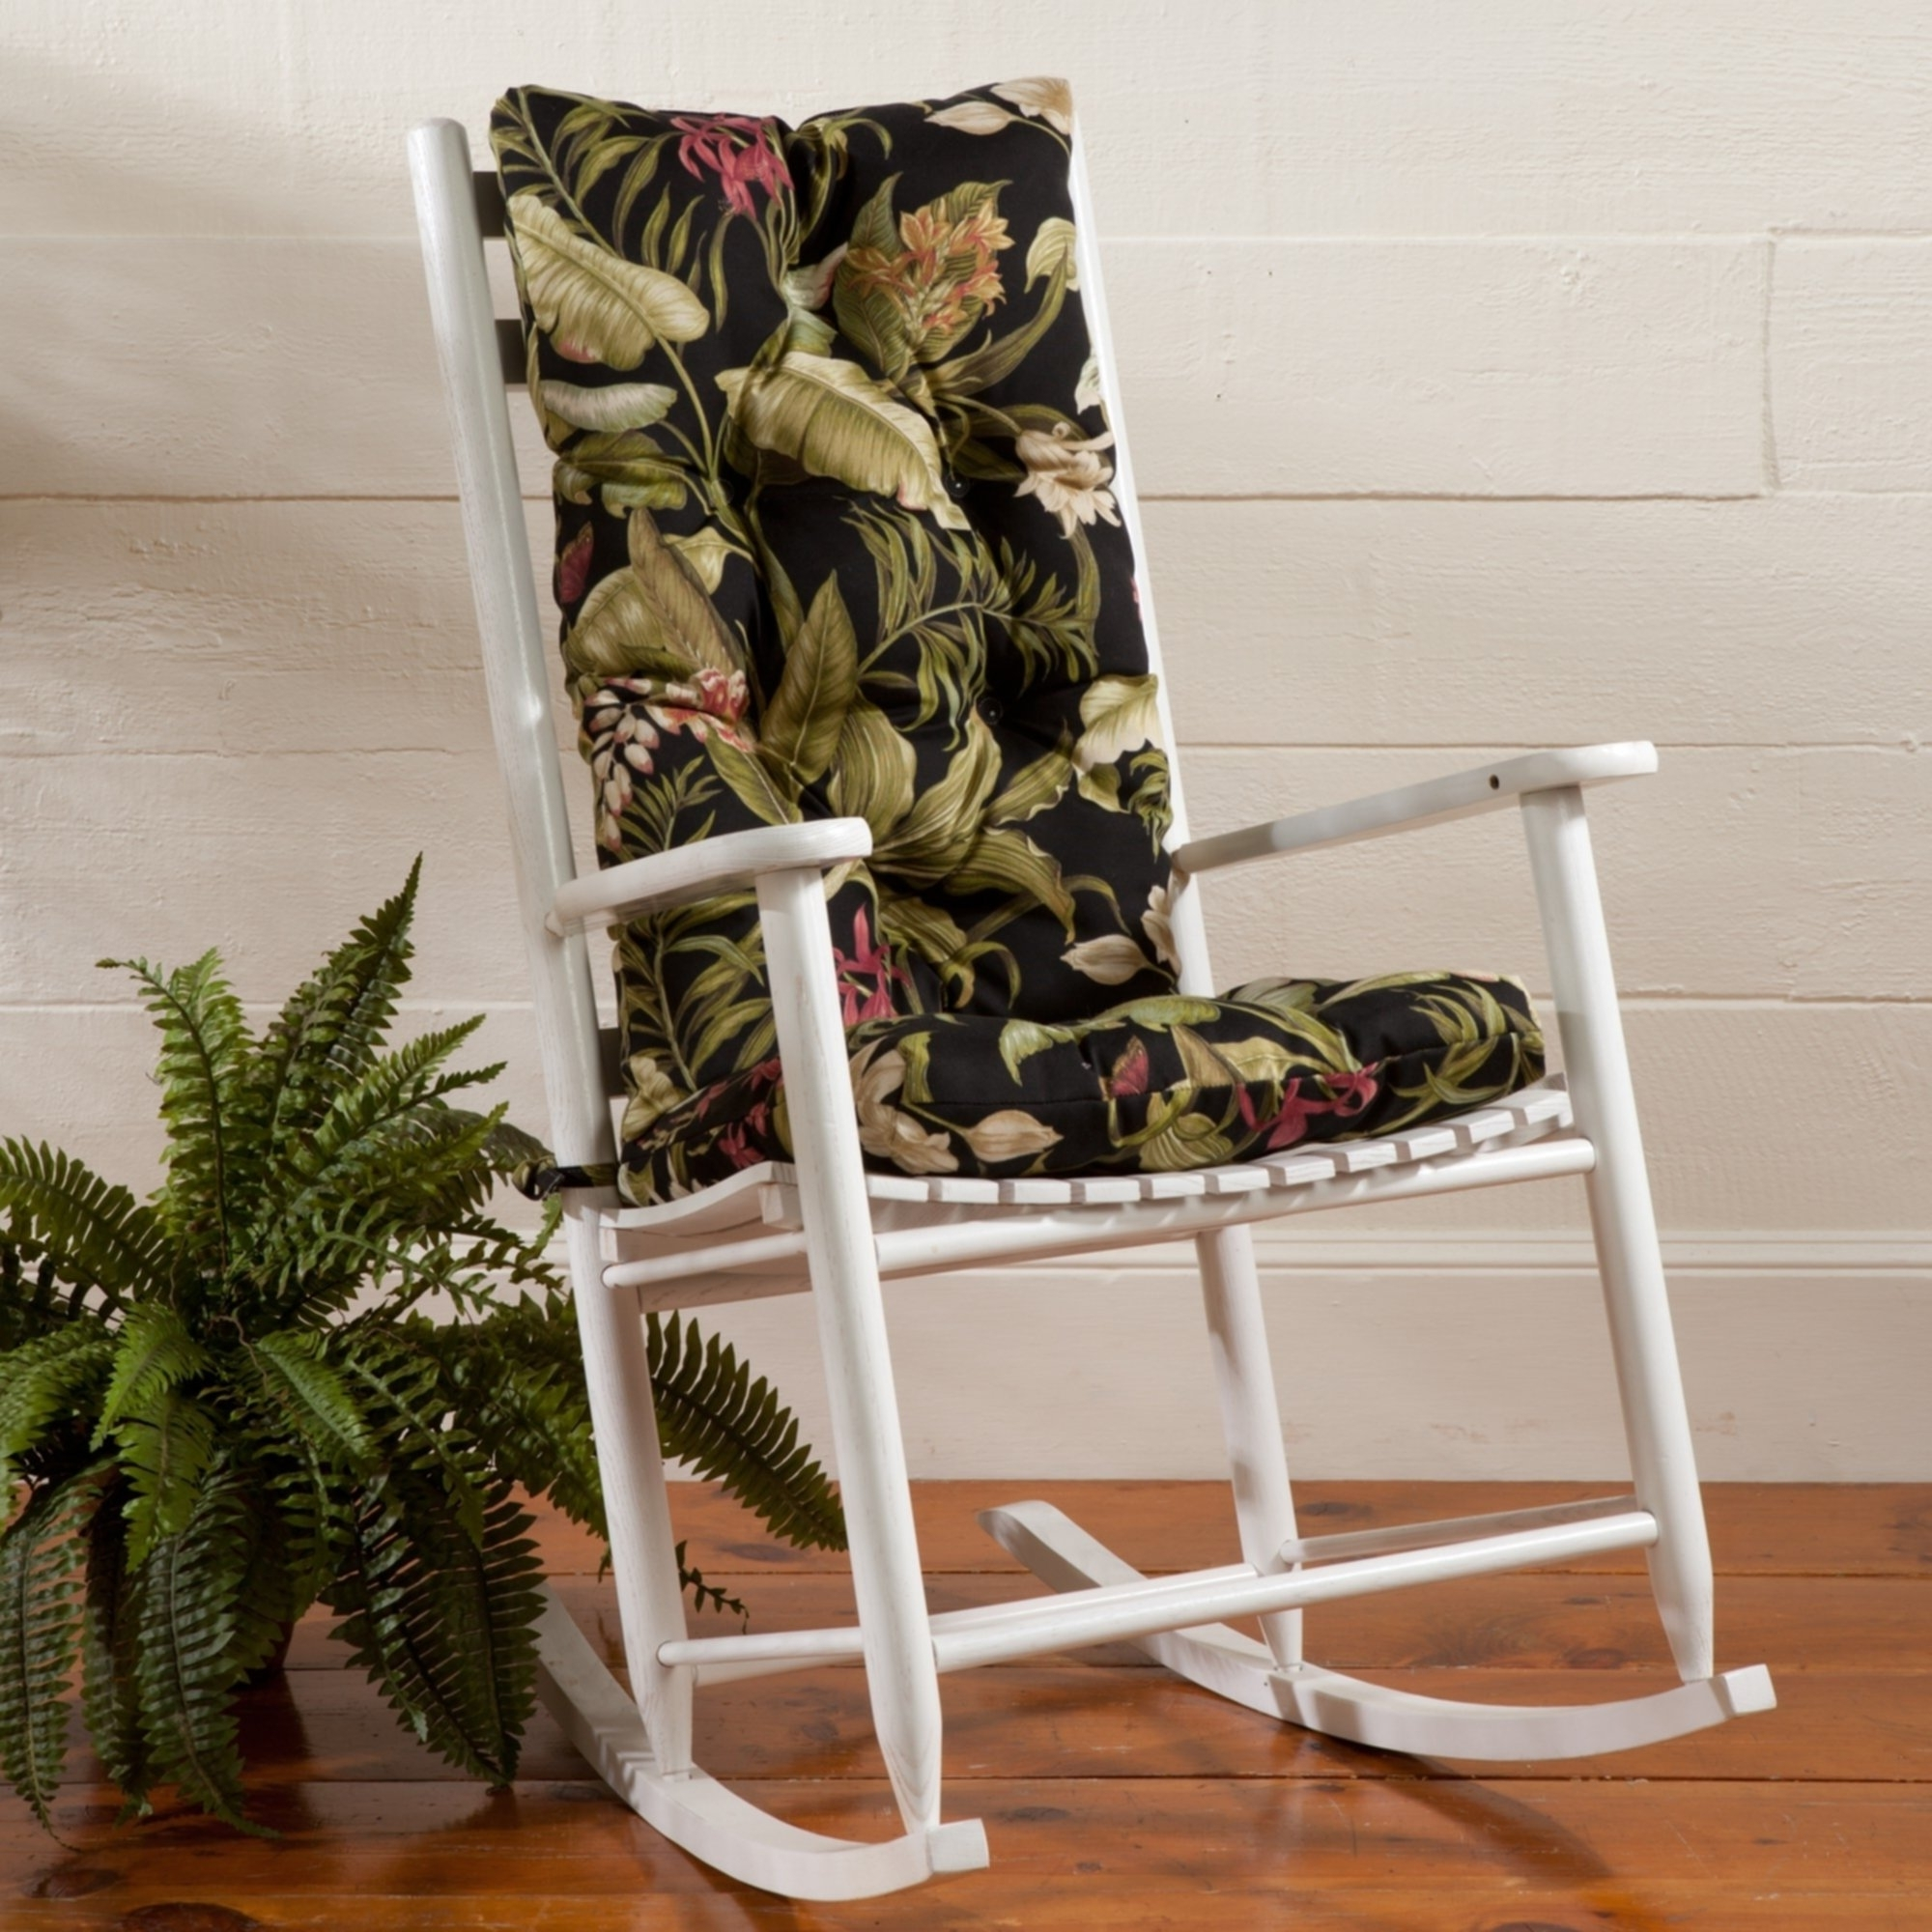 Fashionable Patio Rocking Chairs With Cushions Inside Good Outdoor Rocking Chairs With Cushions – Walsall Home And Garden Blog (View 4 of 15)